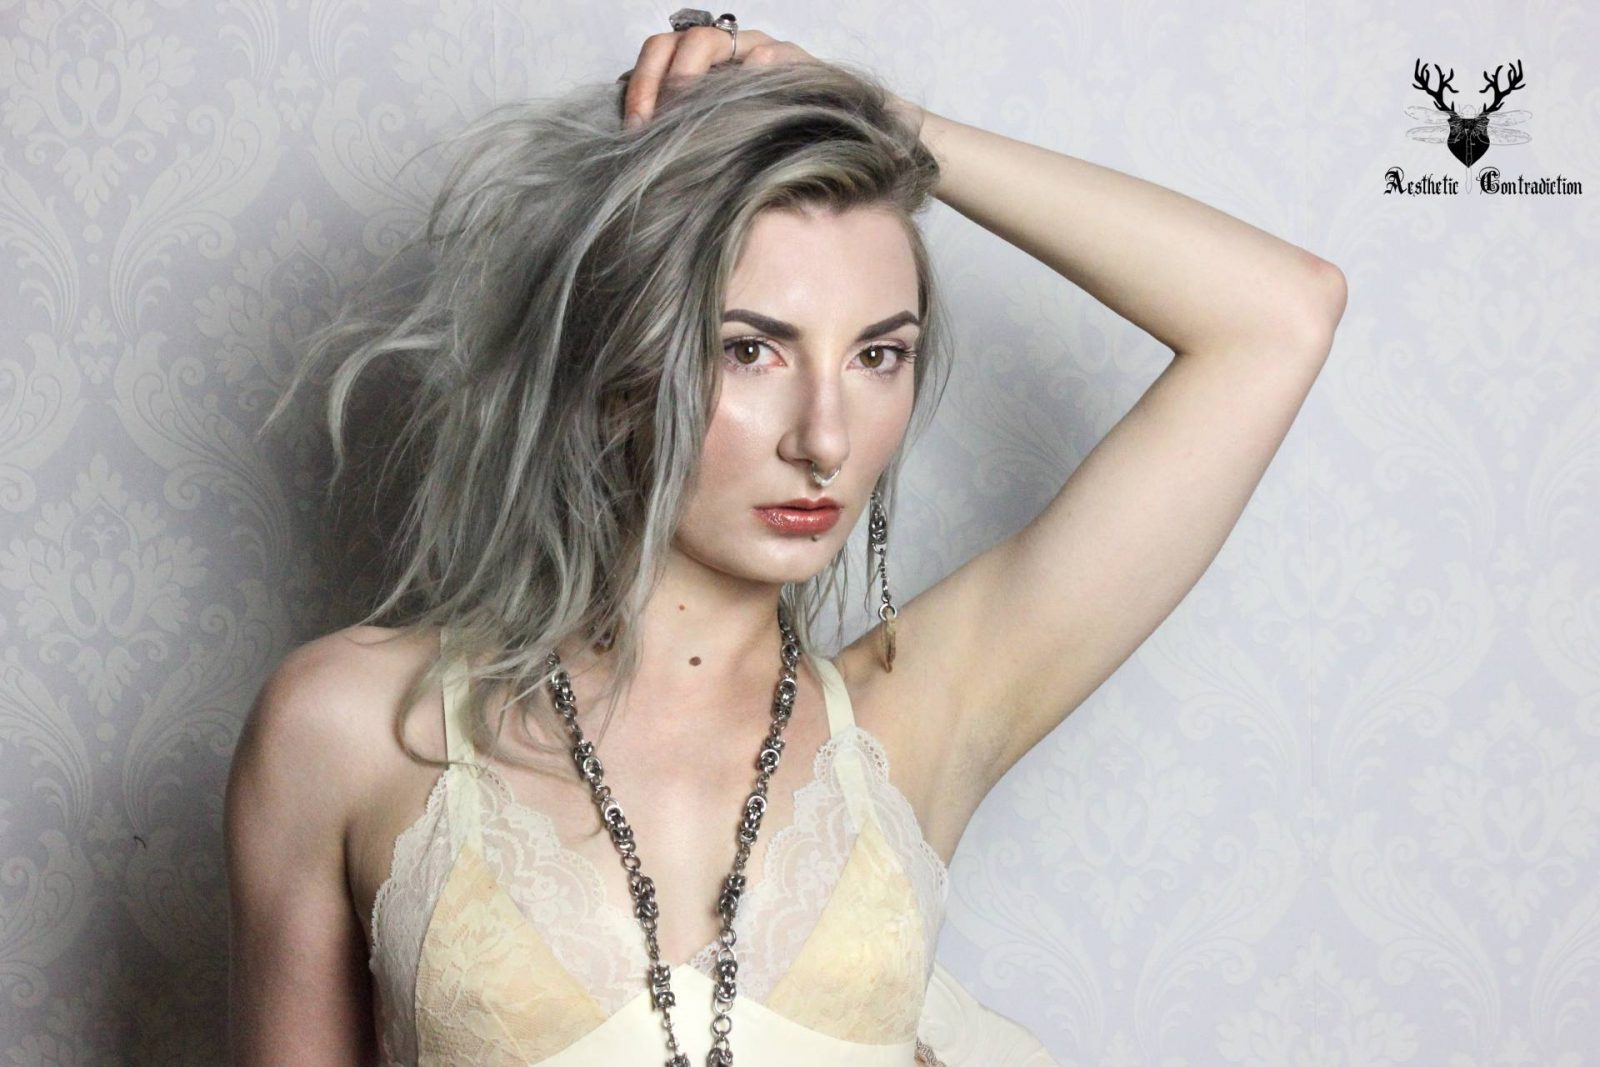 grey hair lace bra